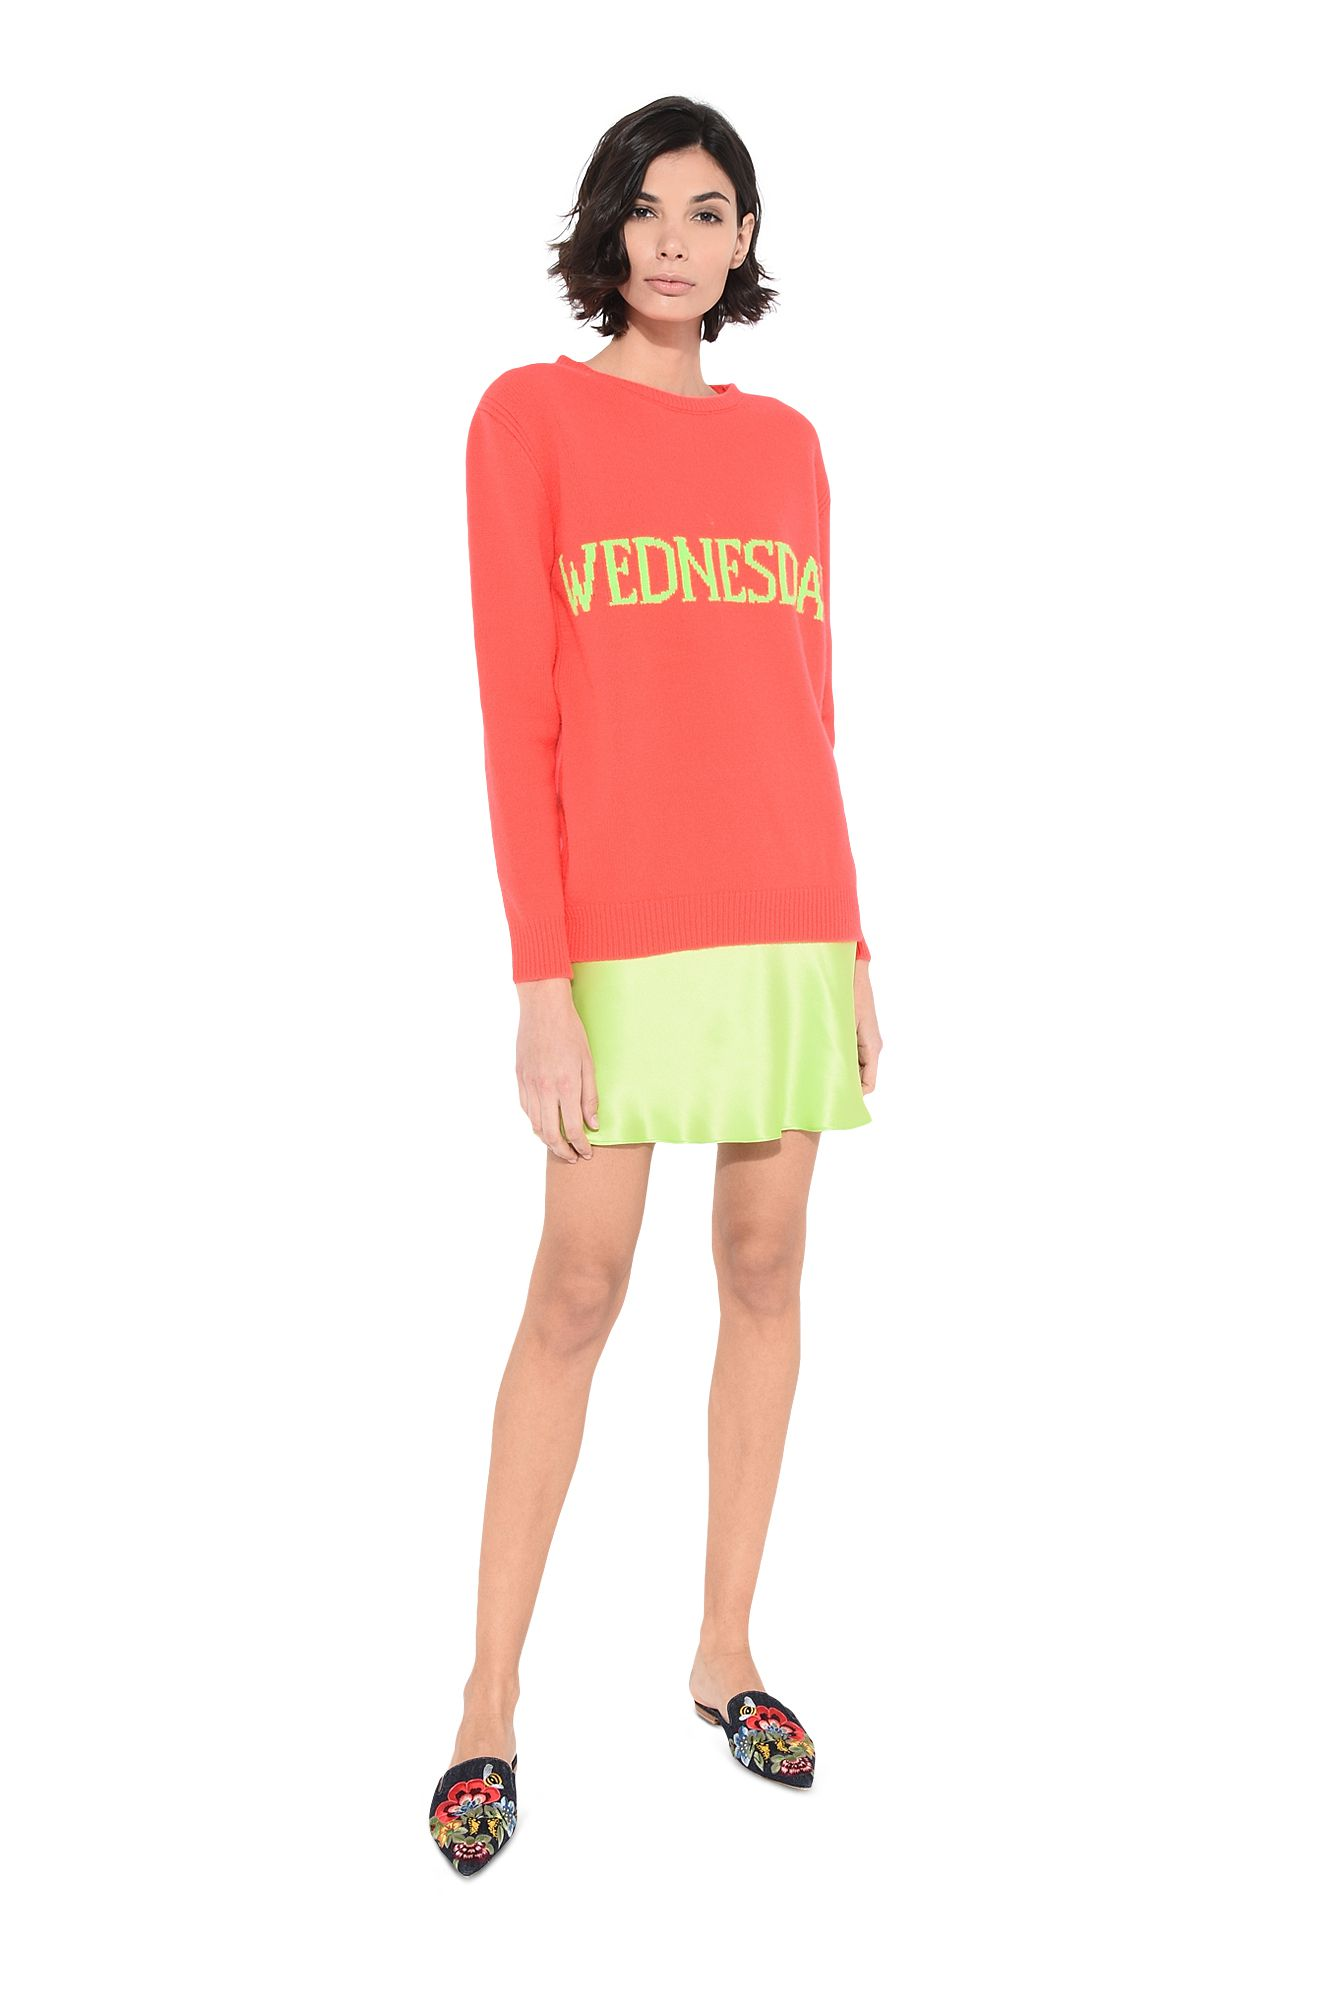 Maglione fluo Wednesday